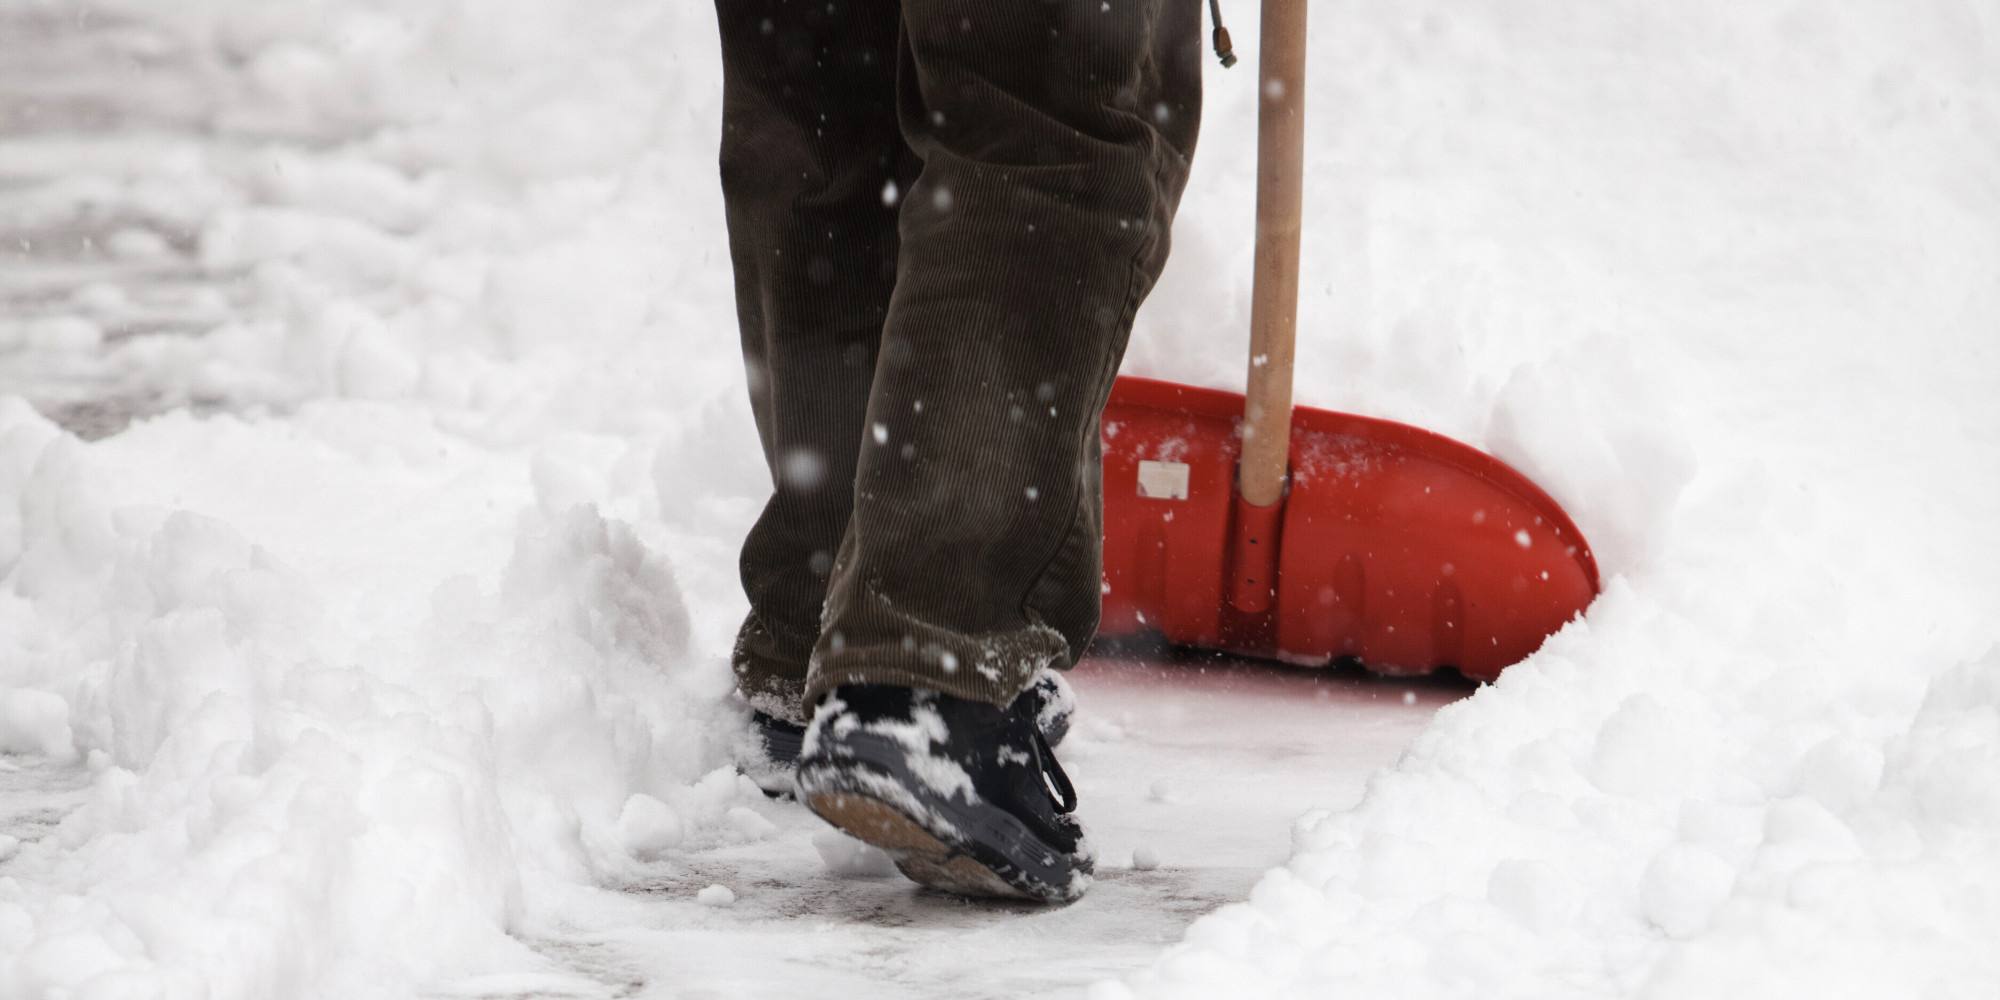 Make sure you're shovelling your snow safely this winter.